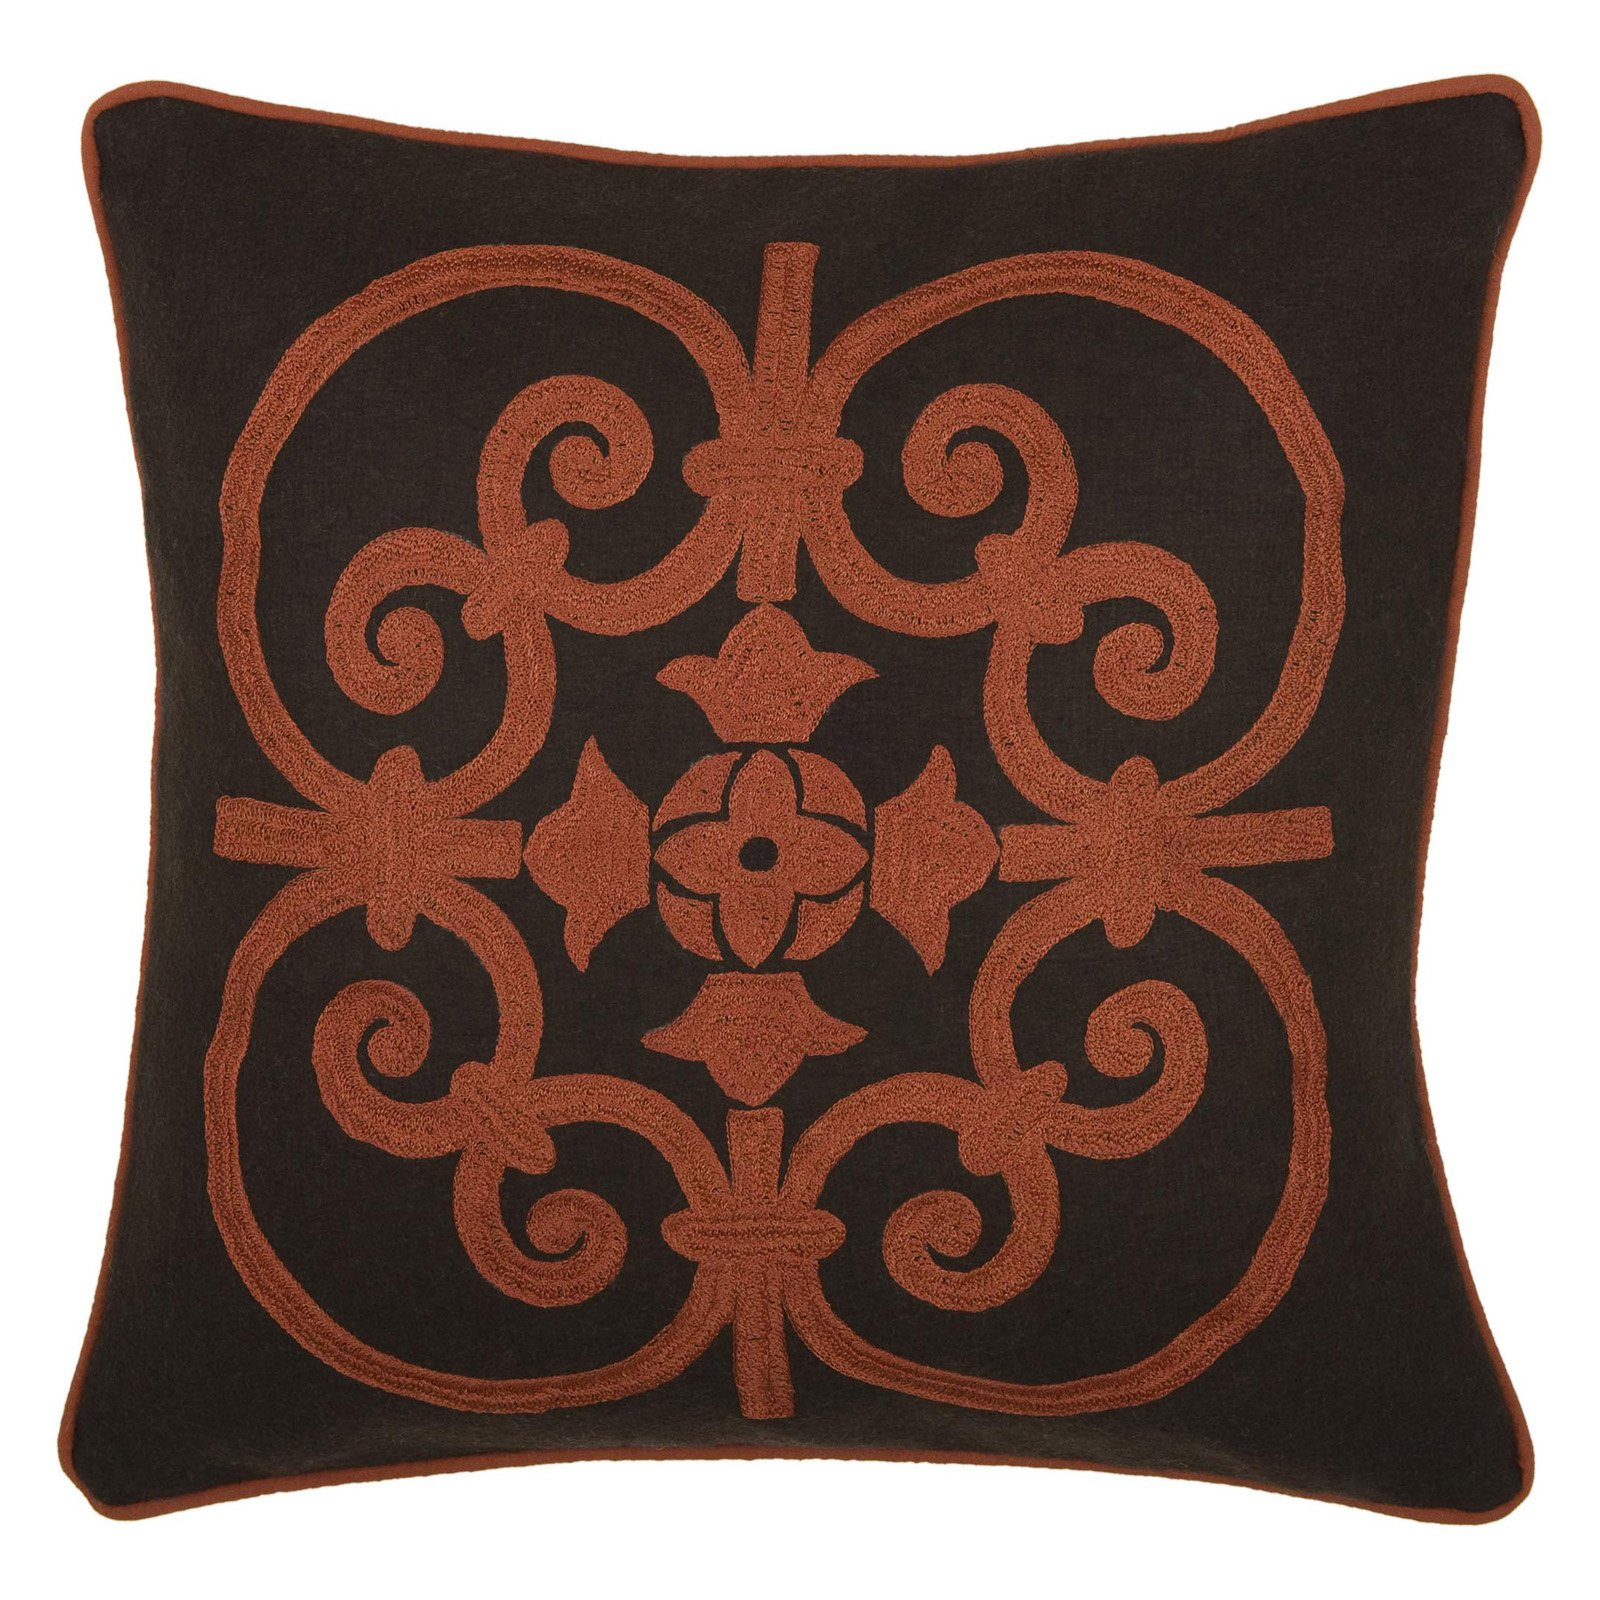 Rizzy Home Embroidered Wrought Iron Scroll and Welt Decorative Accent Pillow